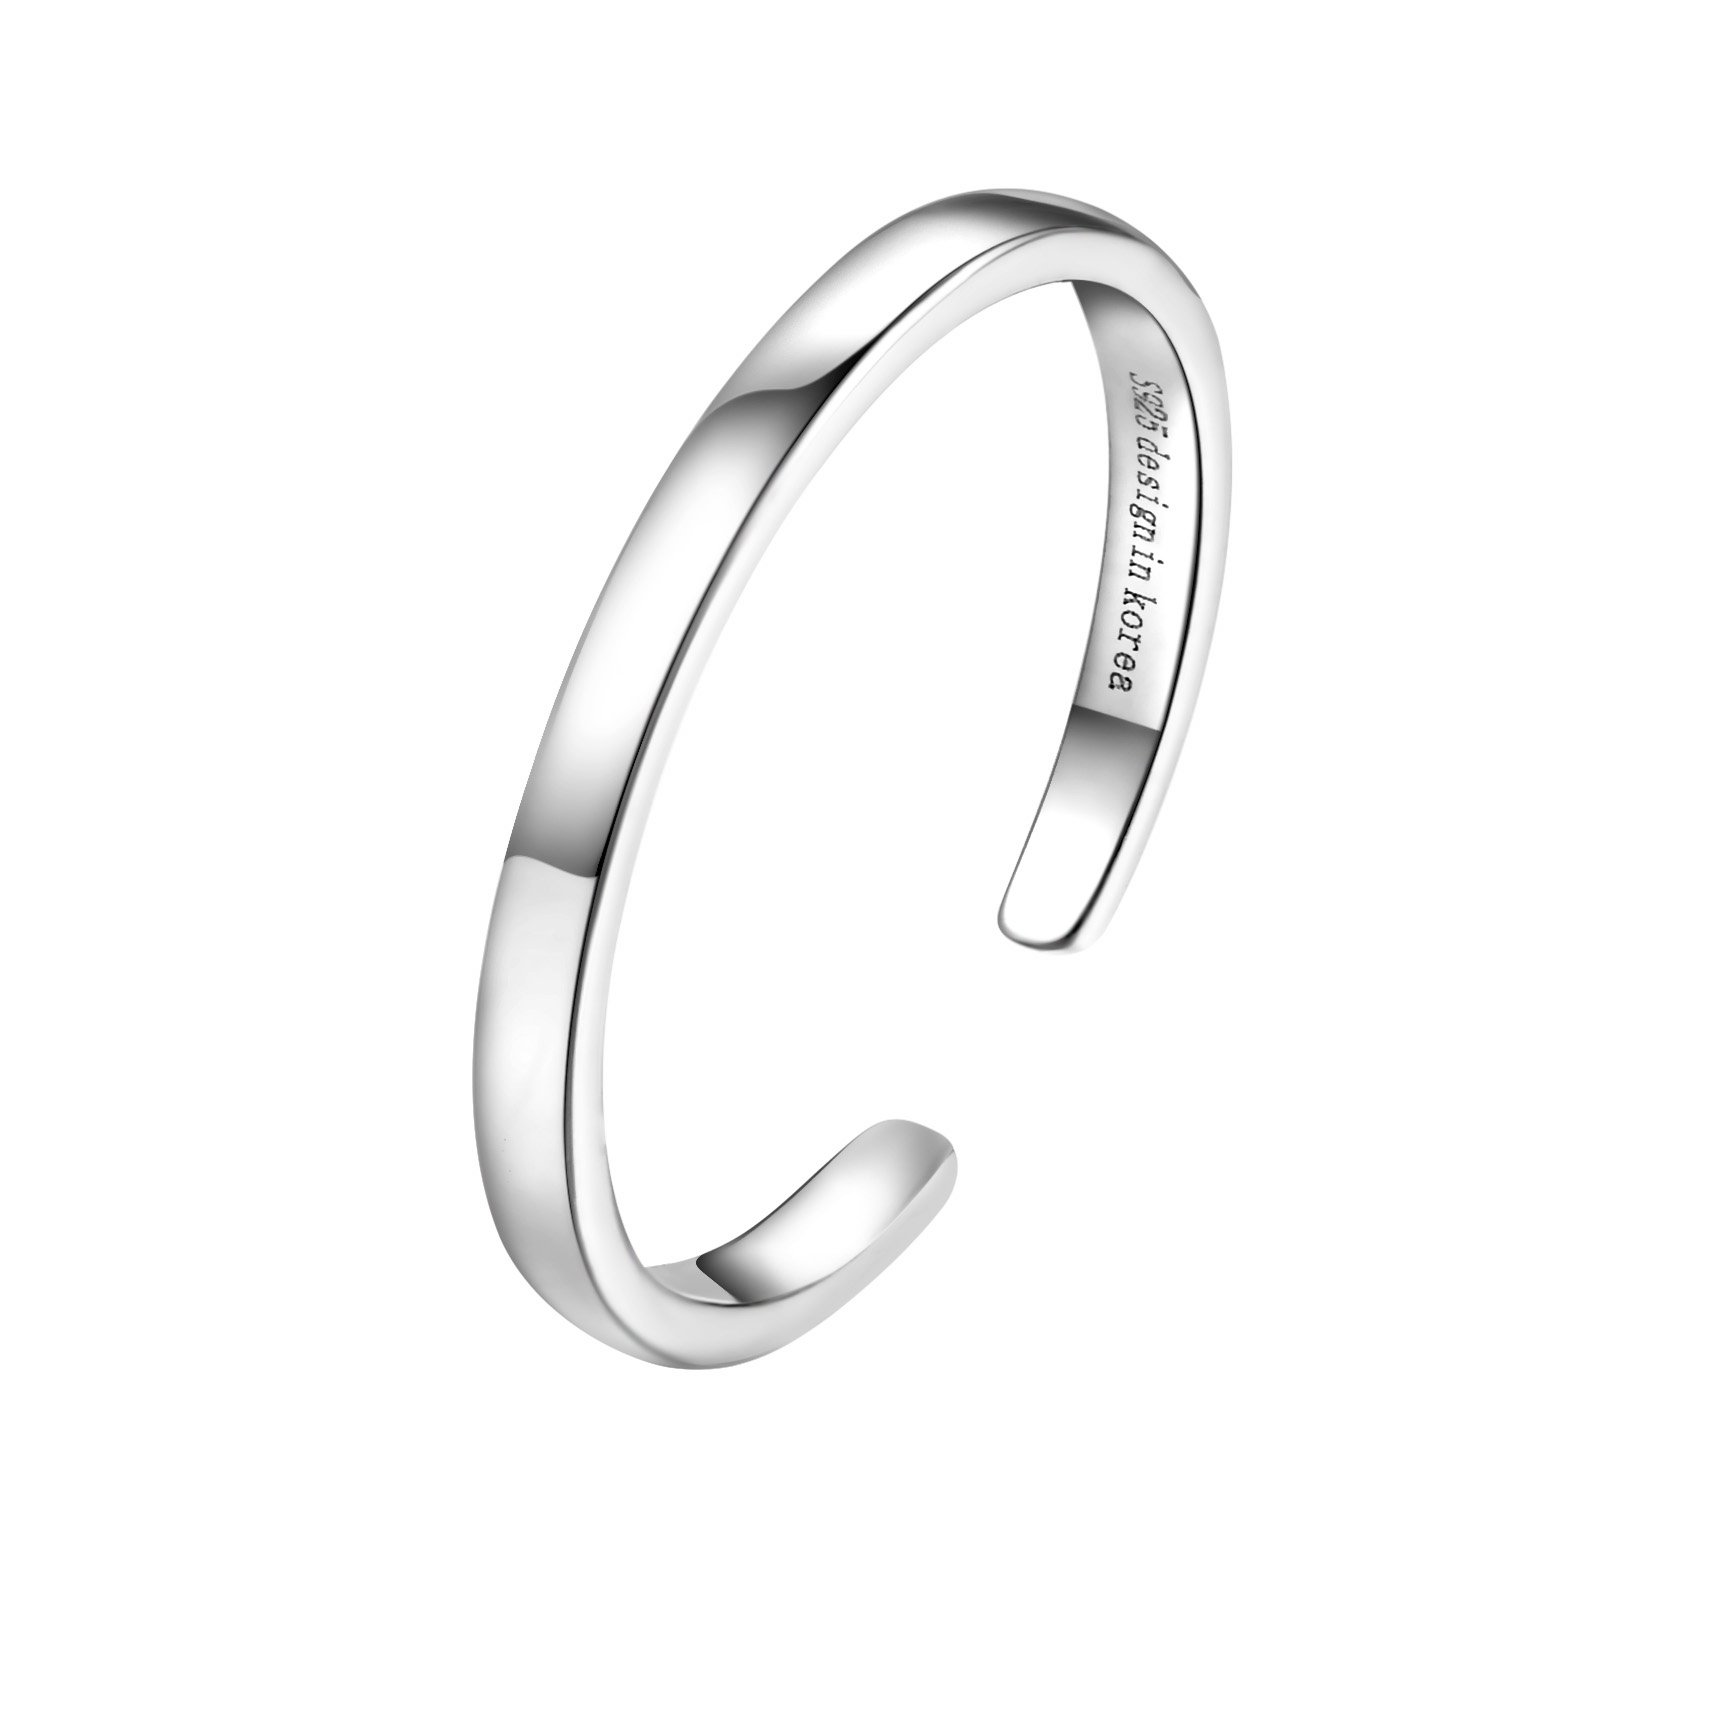 Sterling Silver Stackable Above Knuckle Open Finger Ring Band Thumb Ring 2mm Width US Size 5.5-7.5